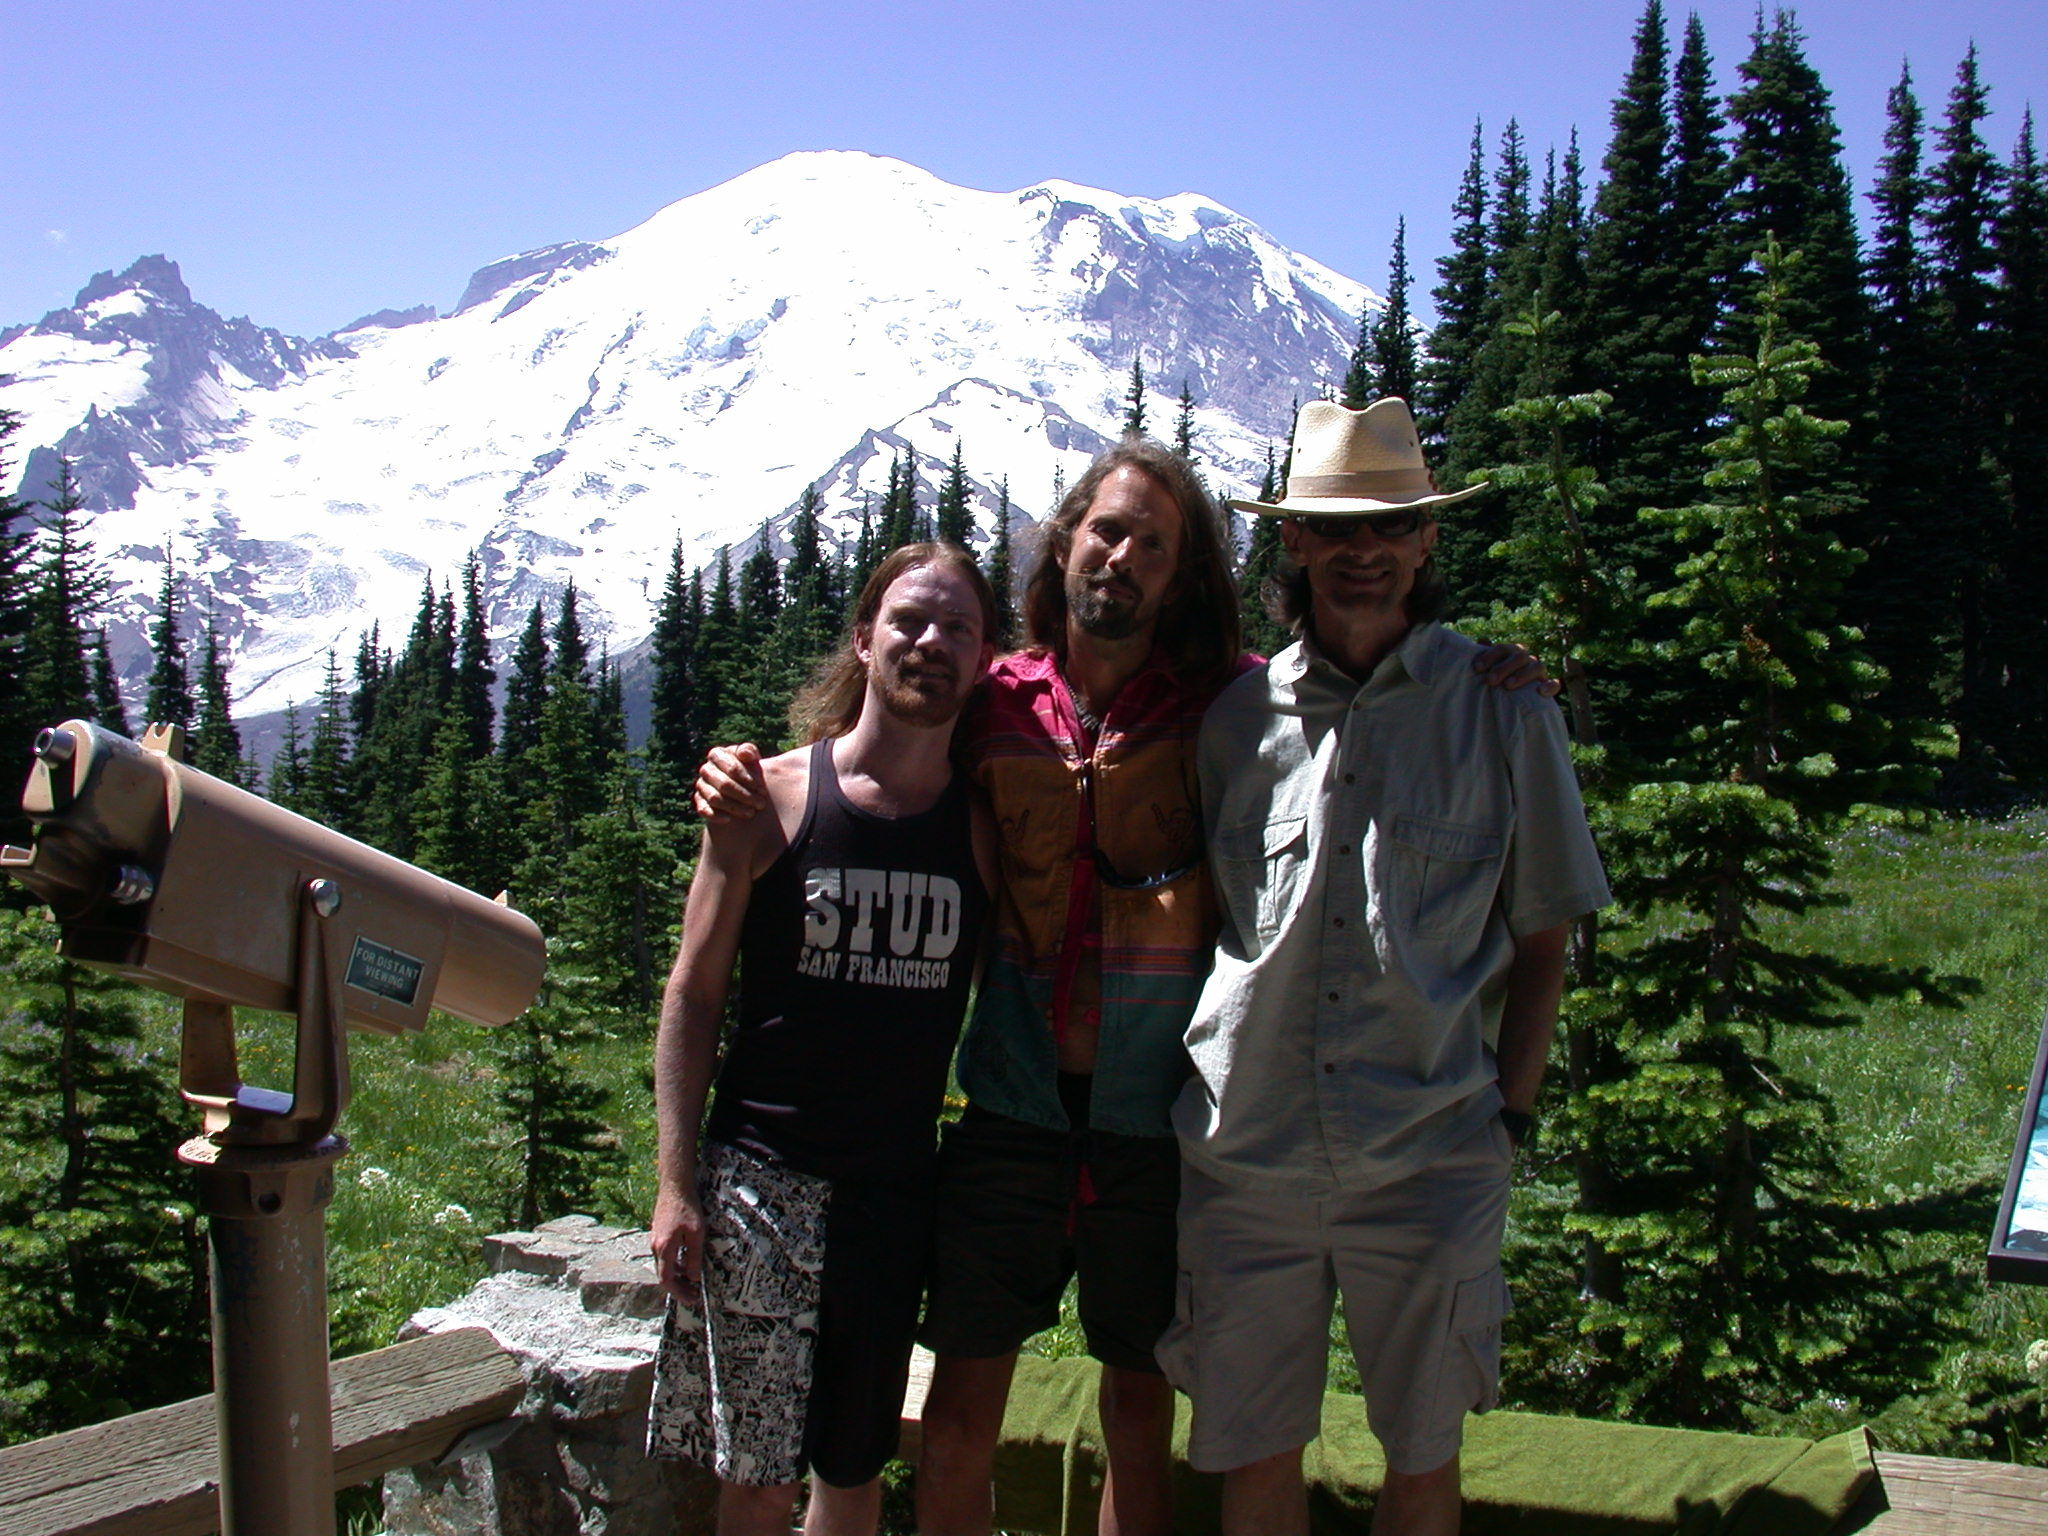 Stardust, Fruitboy, and Don With Grandmother Rainier at Sunrise Camp